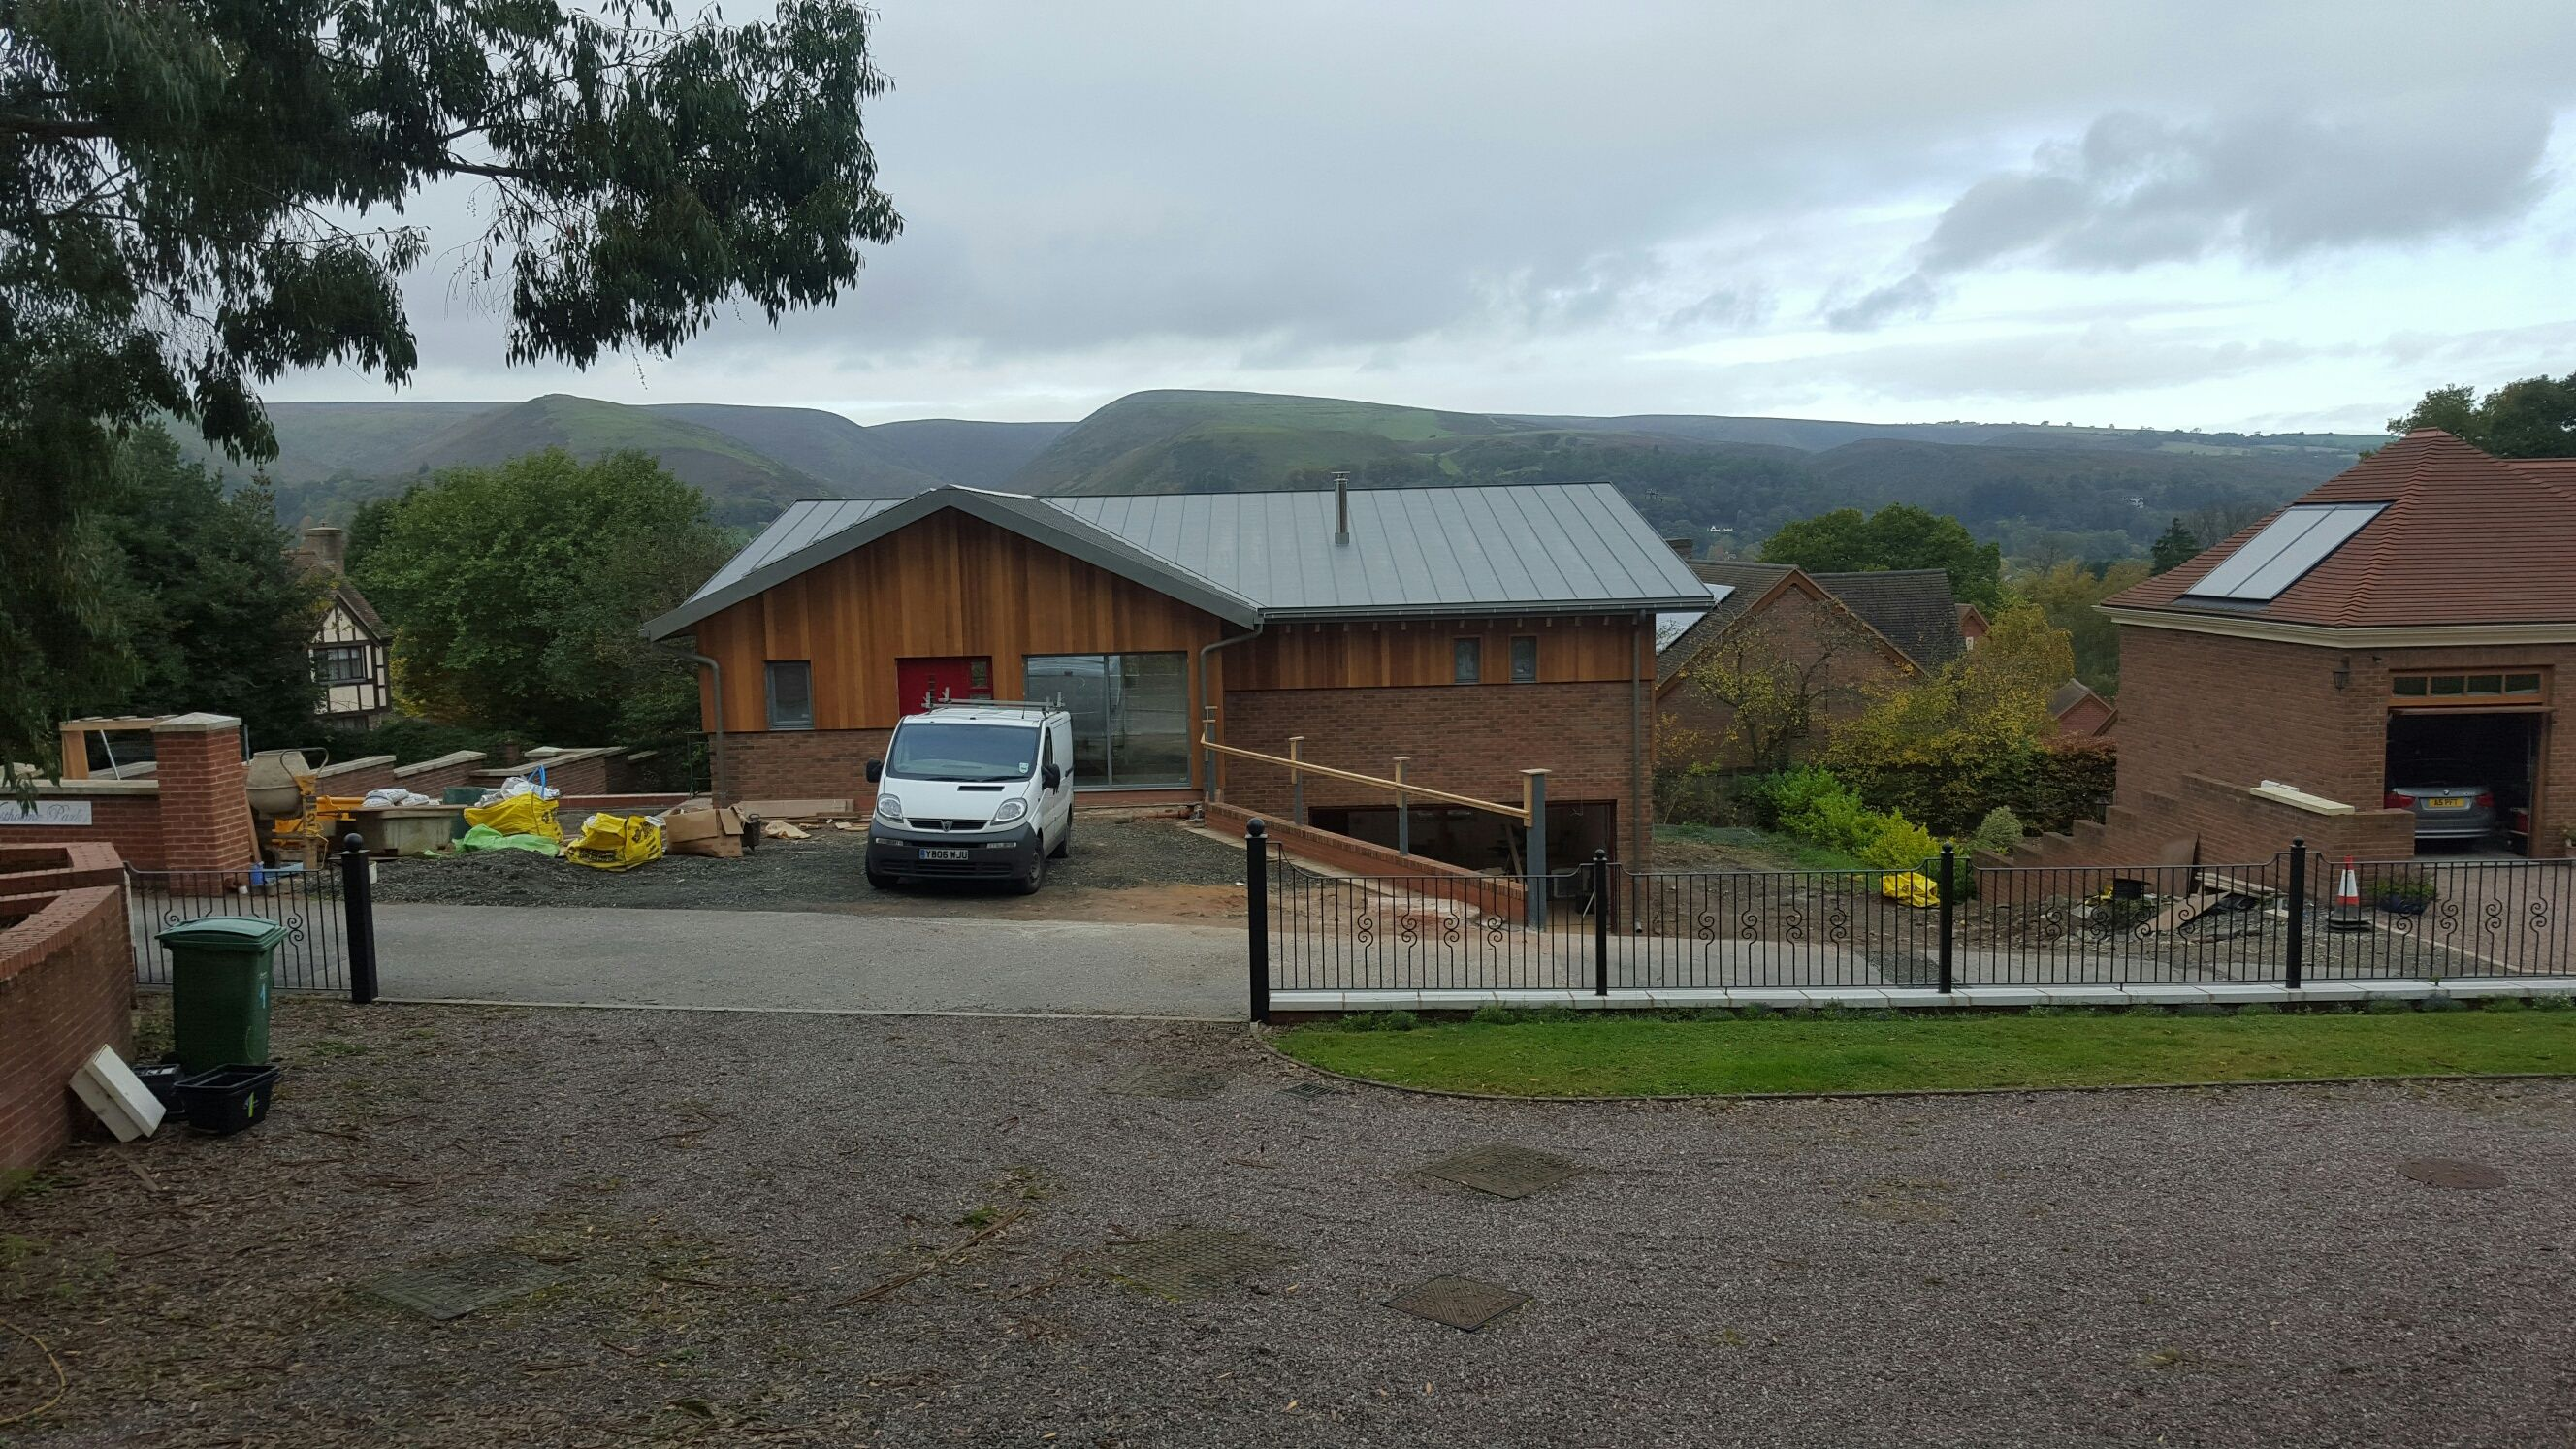 The #Shropshire house is nearing completion - landscaping and decoration are underway.